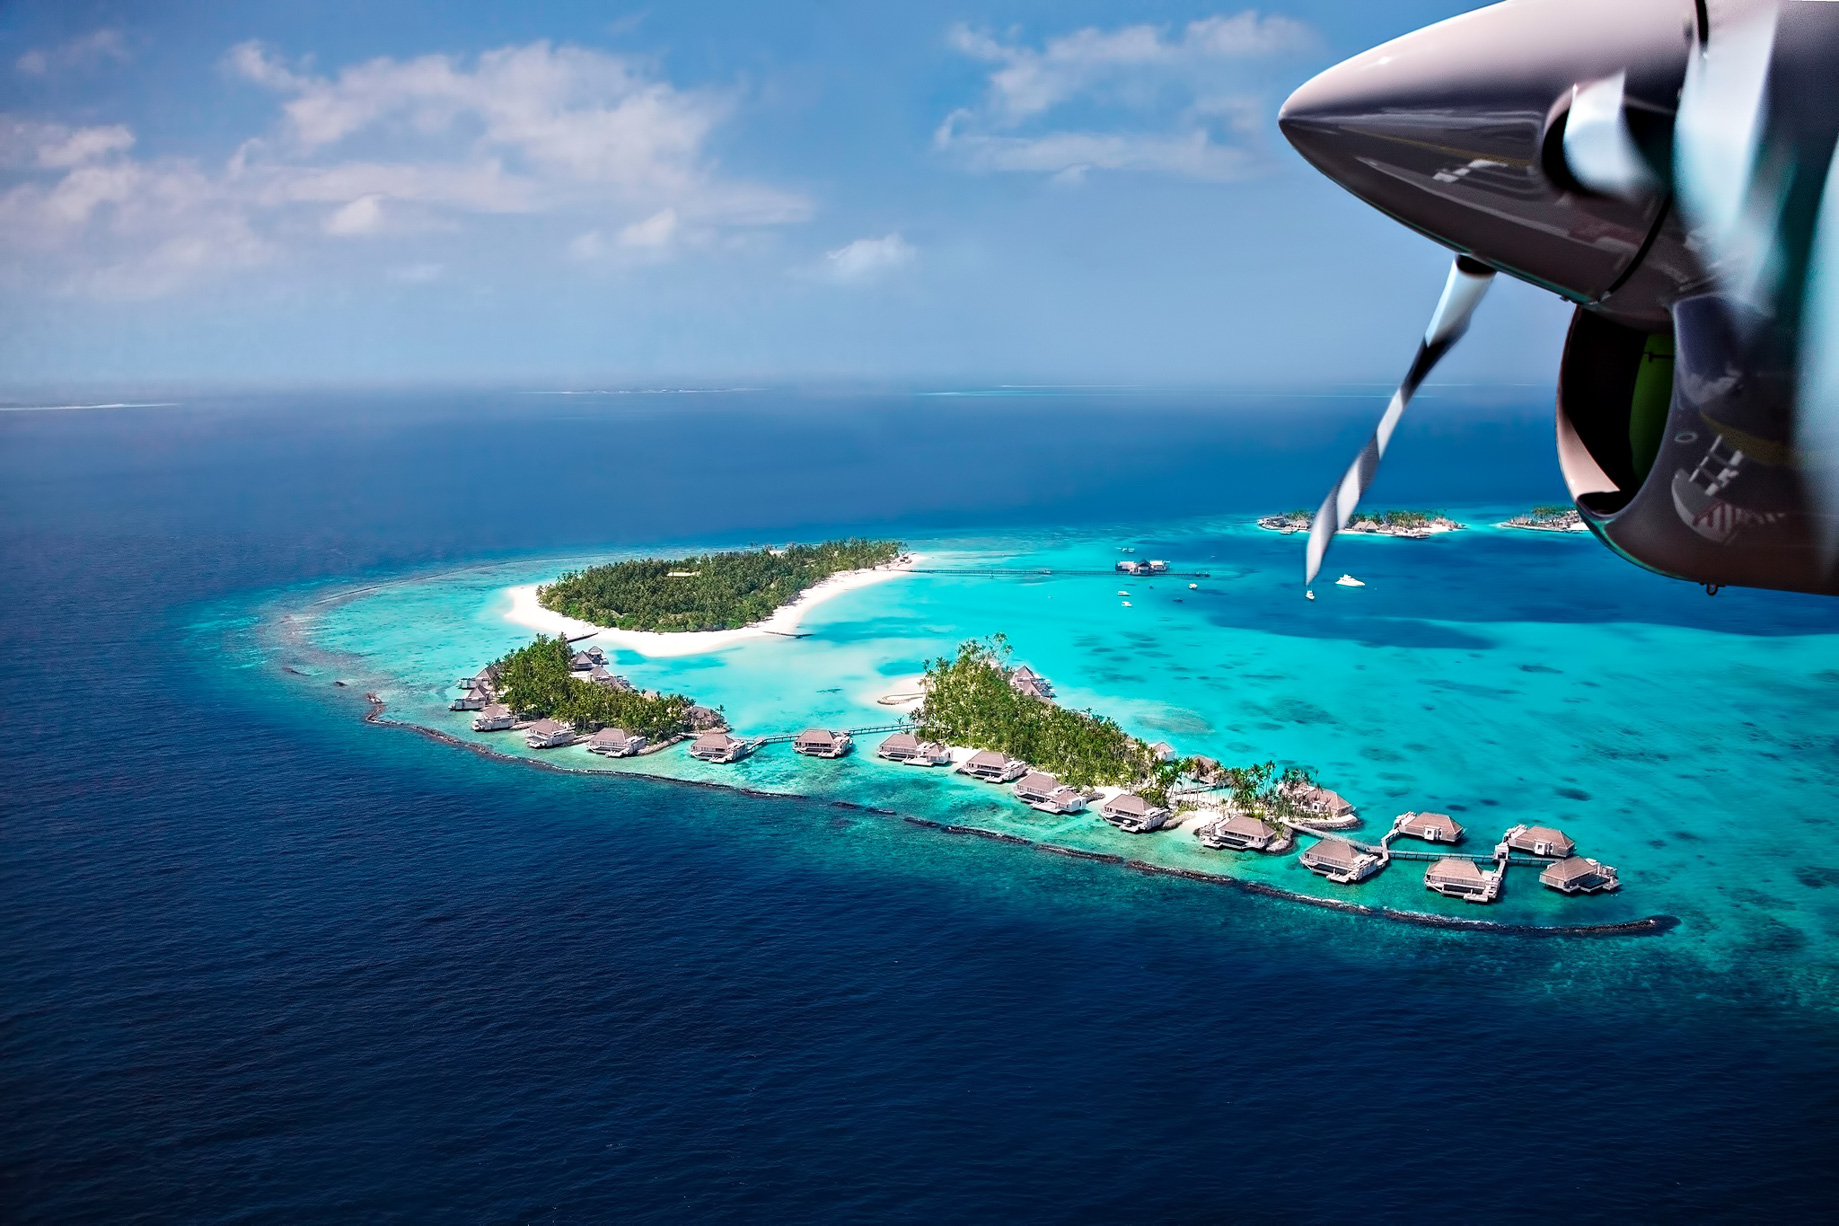 Cheval Blanc Randheli Luxury Resort - Noonu Atoll, Maldives